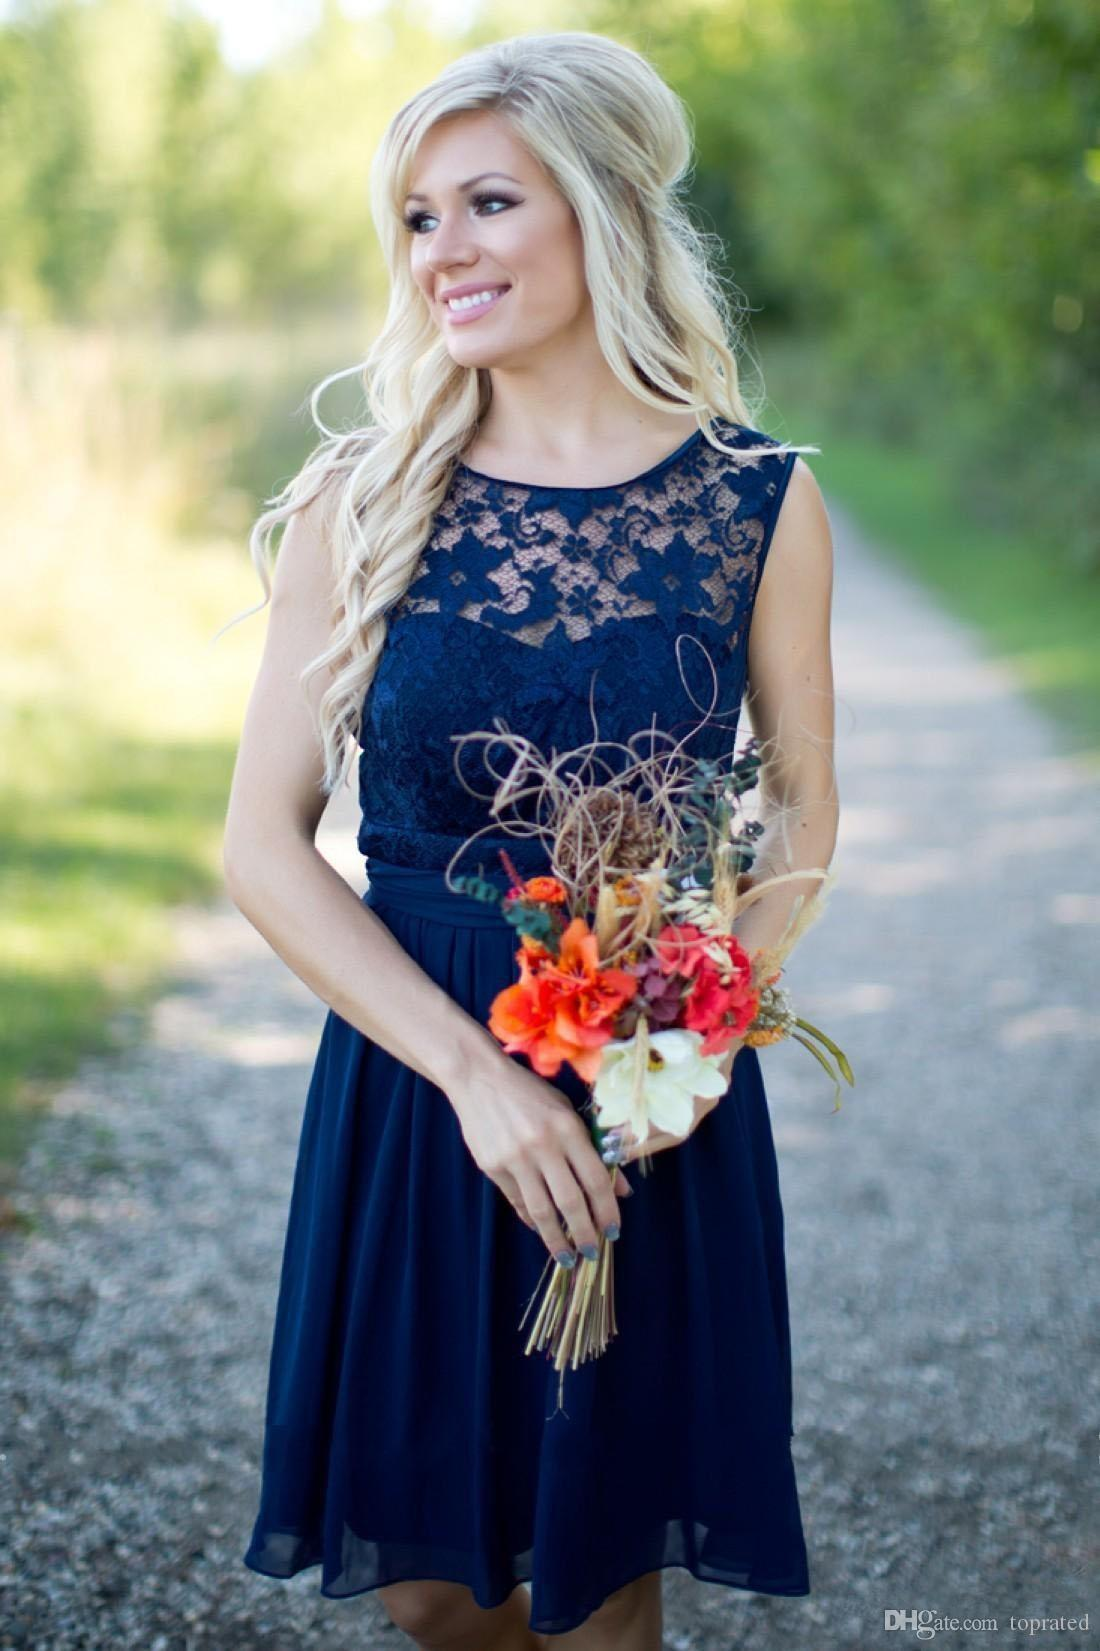 2018 chiffon lace navy blue short bridesmaids dresses cheap jewel 2018 chiffon lace navy blue short bridesmaids dresses cheap jewel neck knee length low back modern maid of honor dresses formal dresses plus size bridesmaid ombrellifo Image collections